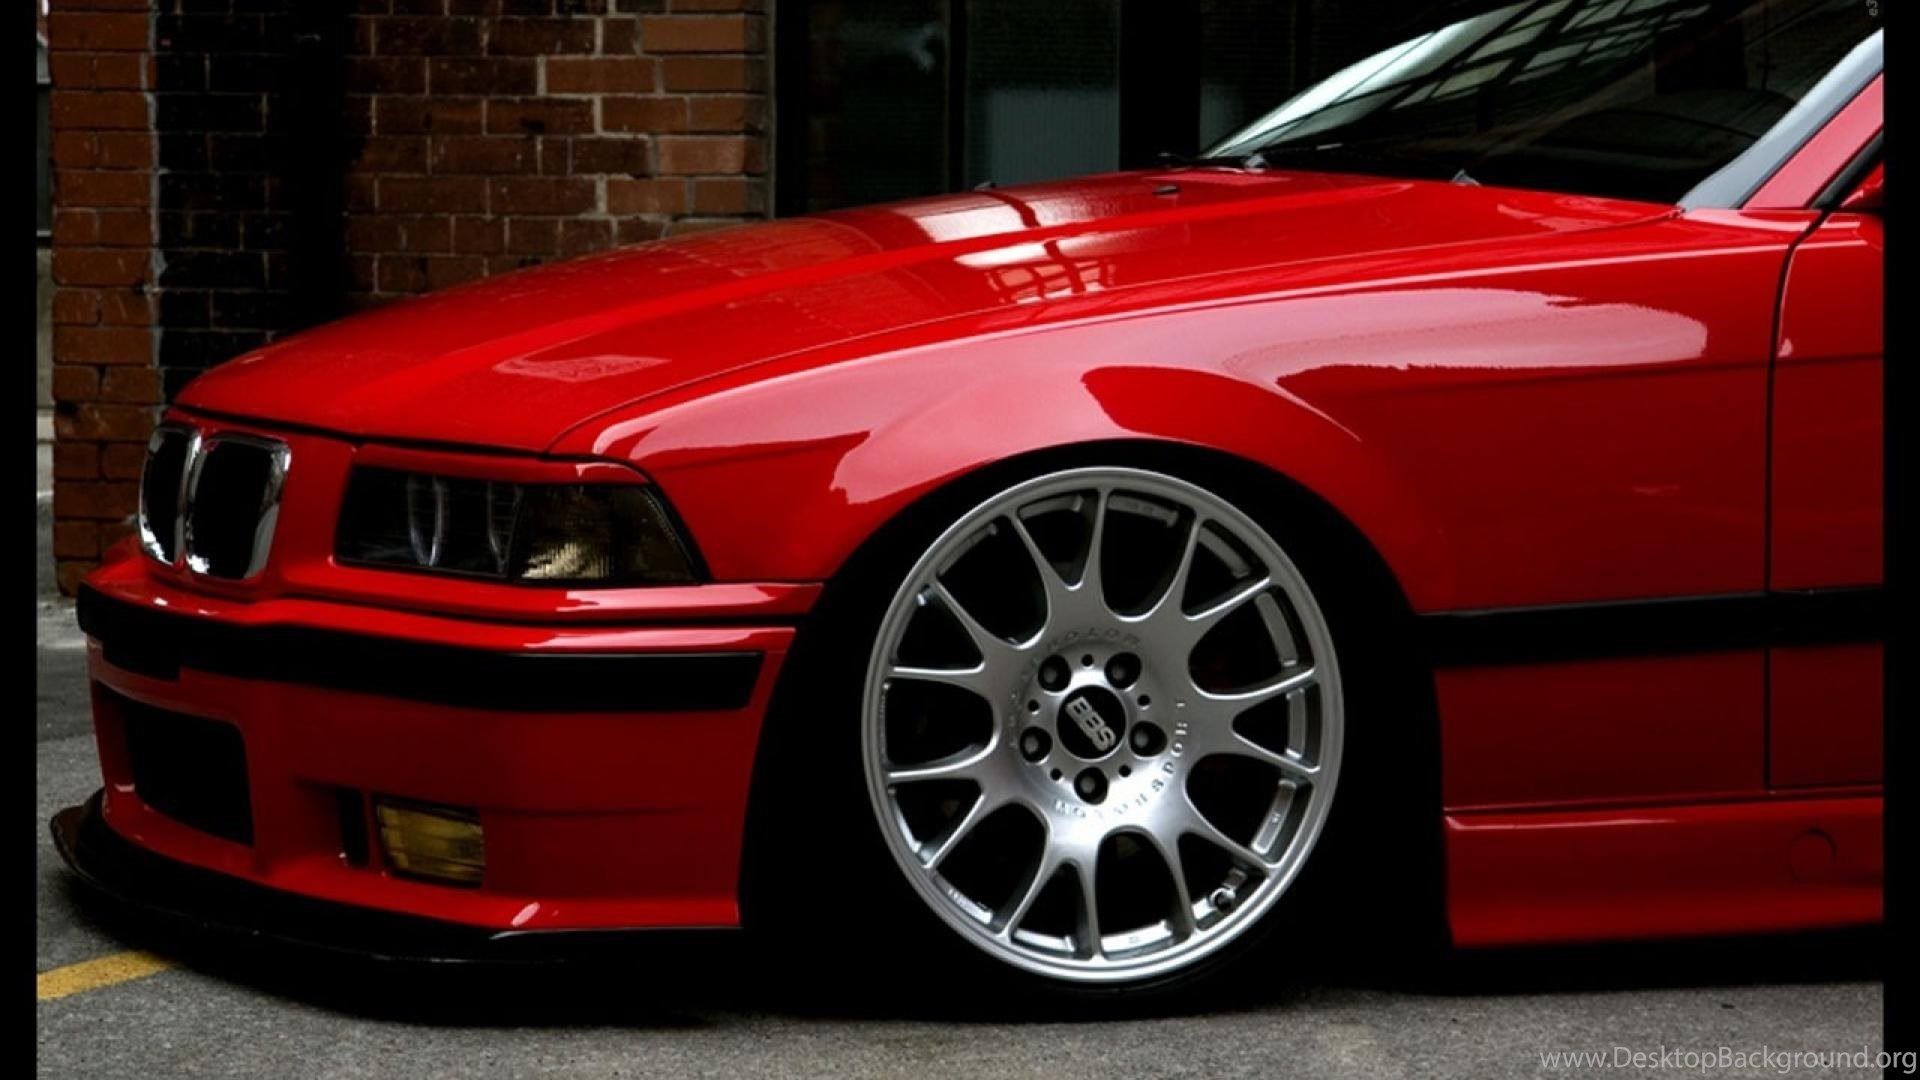 Bmw Red E36 Wallpapers Desktop Background